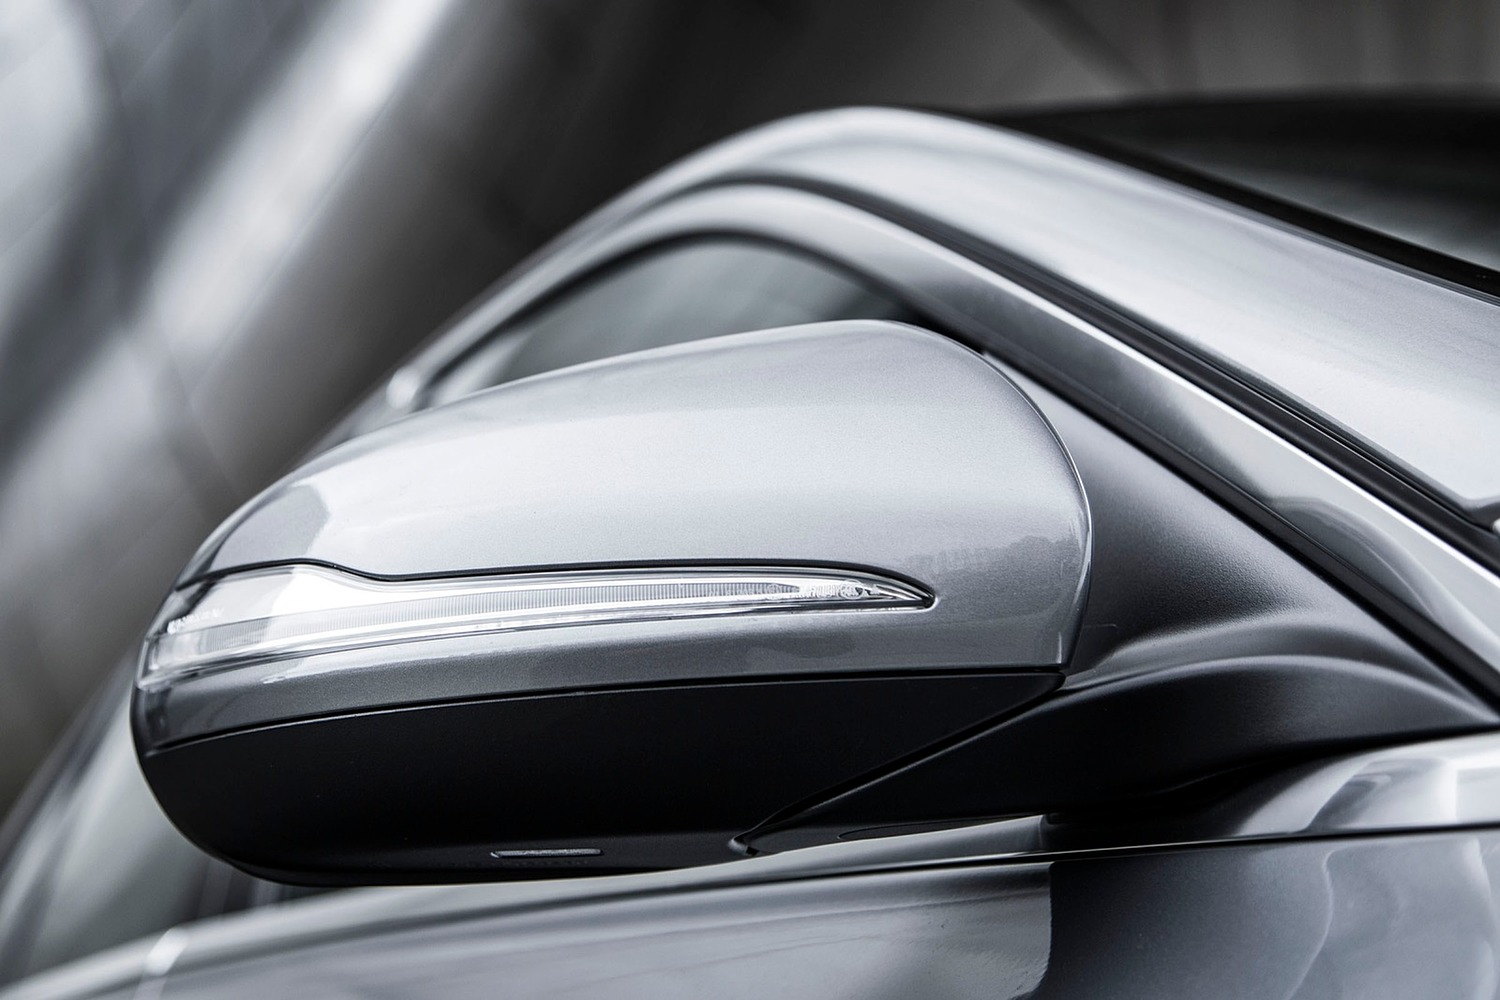 2018 Mercedes-Benz C-Class C 300 4MATIC Sedan Exterior Detail